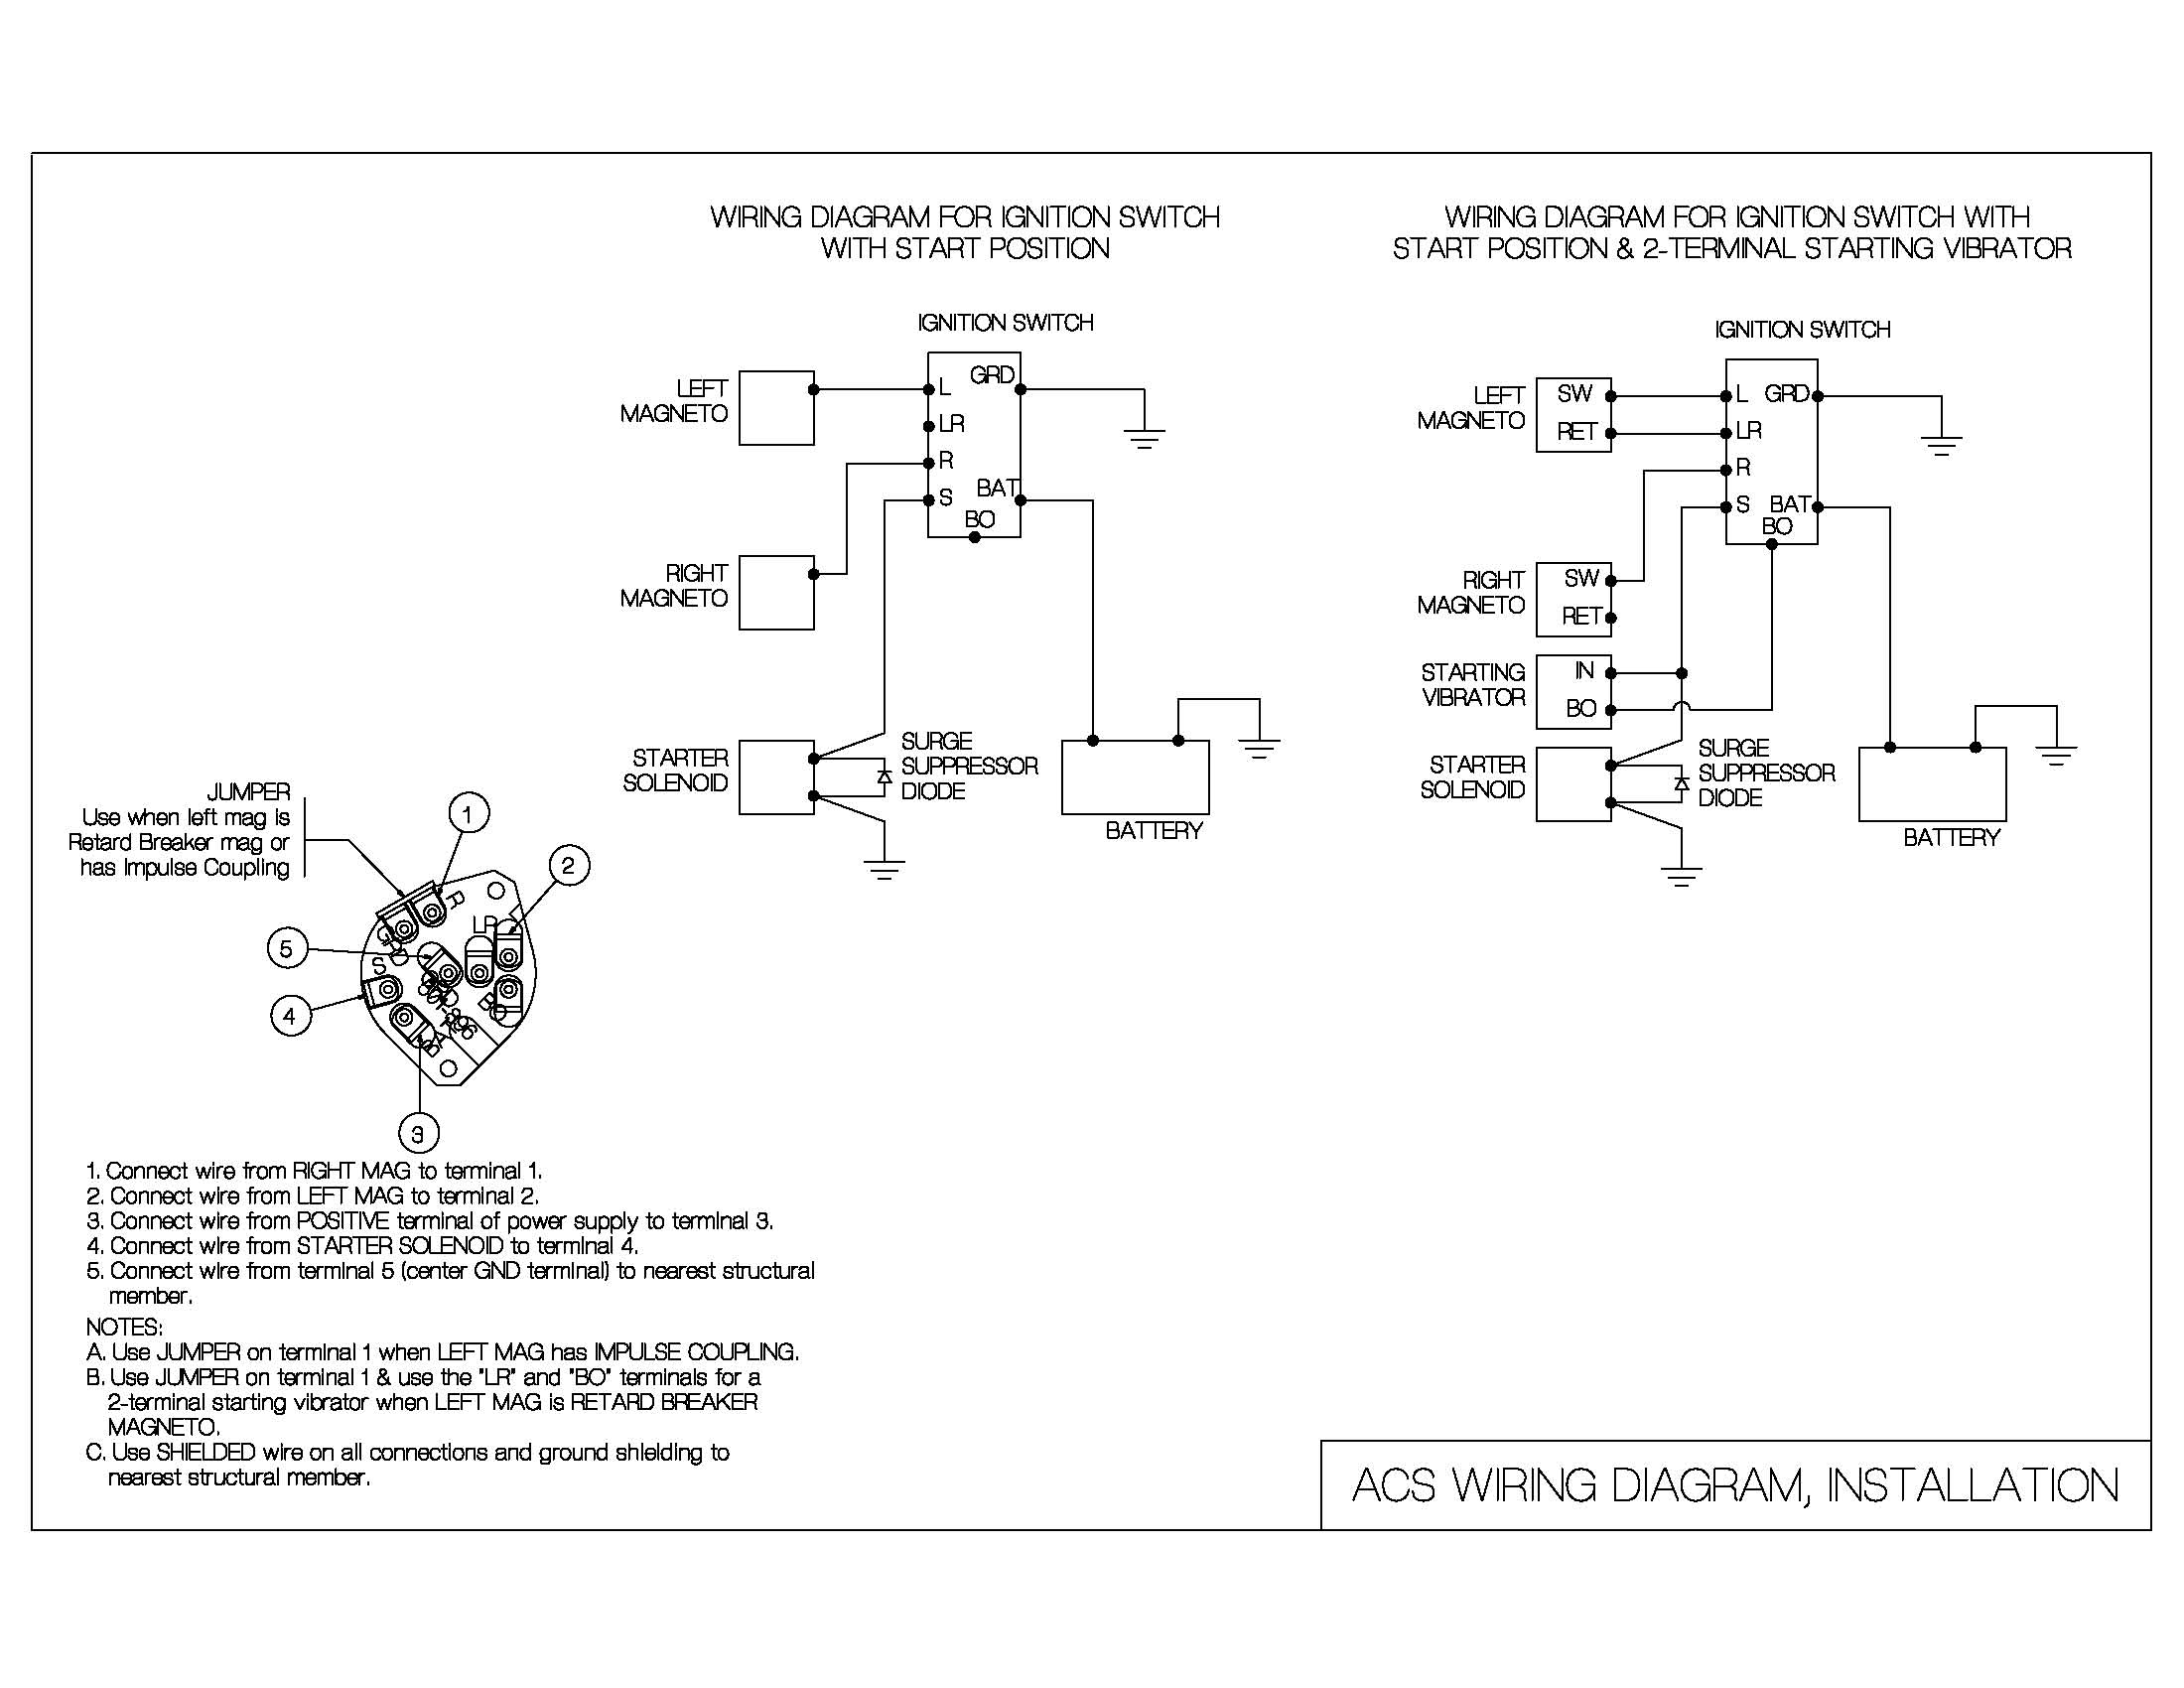 ignition switch wiring diagram acs products company rh acsproducts co Chevy Ignition Switch Wiring Diagram how to wire a magneto ignition switch